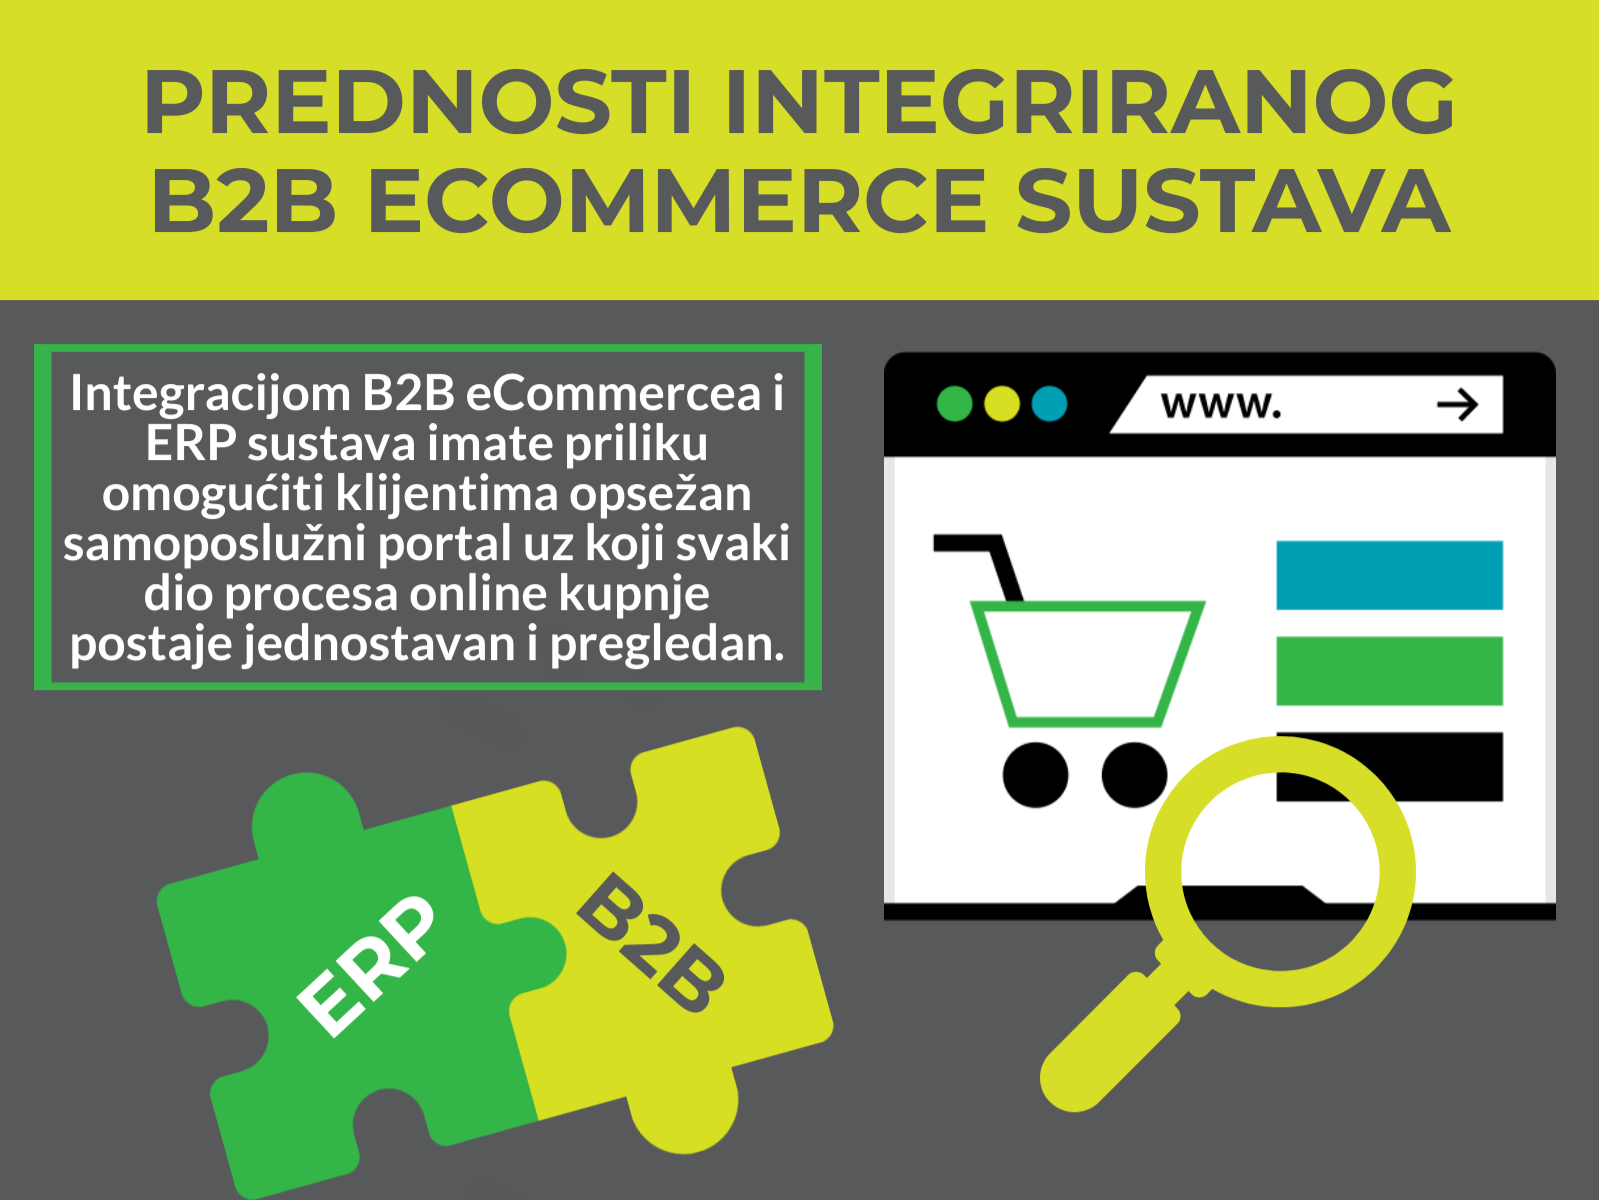 b2b ecommerce microsoft dynamics nav integration